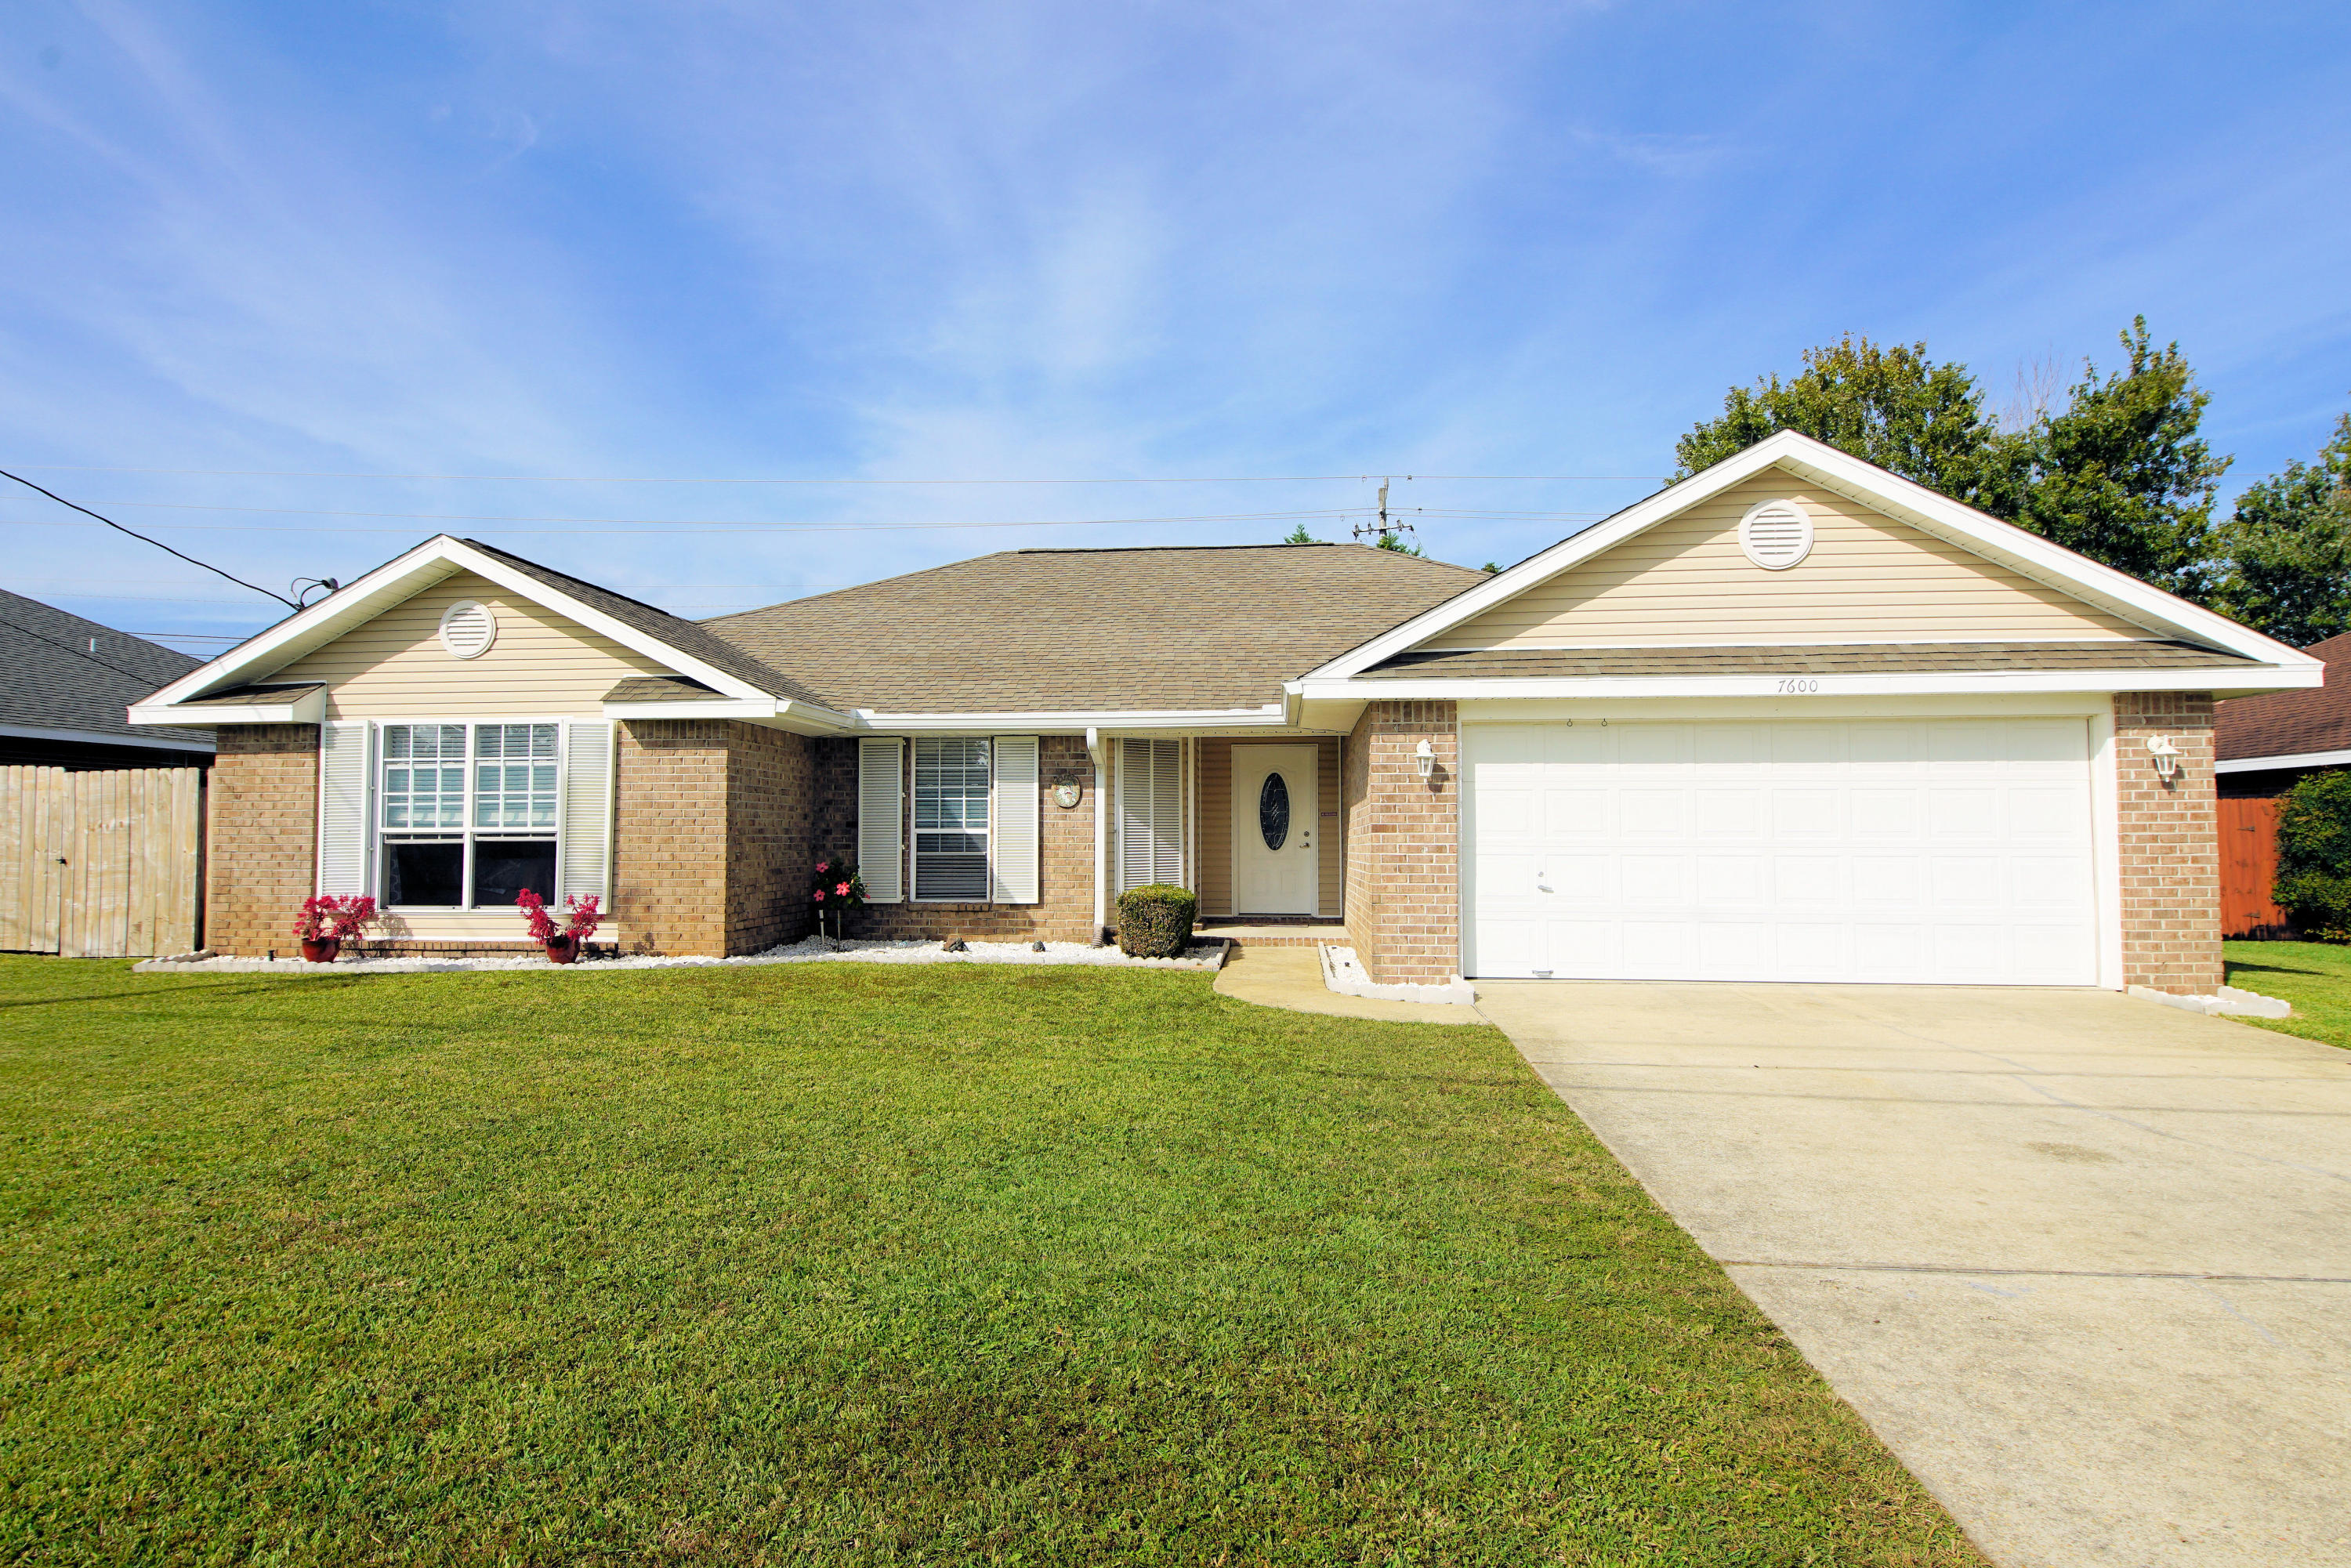 7600 Marthas Way Navarre Fl Mls 810421 Ann Jones Florida